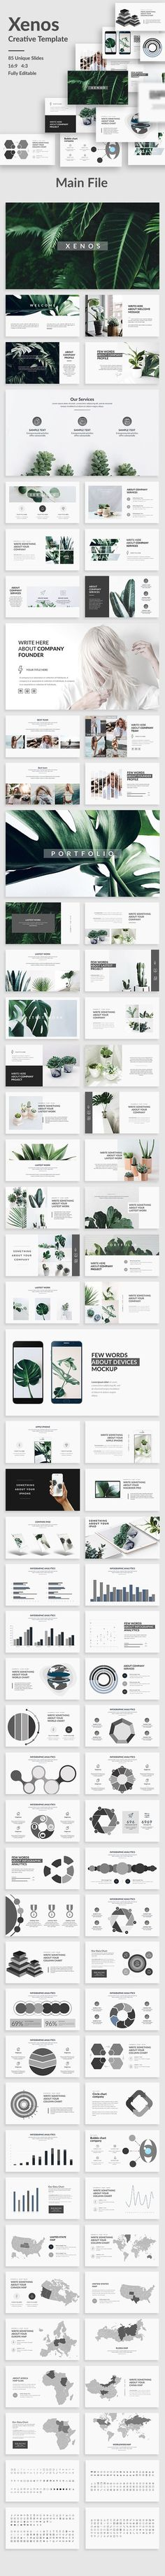 Xenos Creative Powerpoint Template